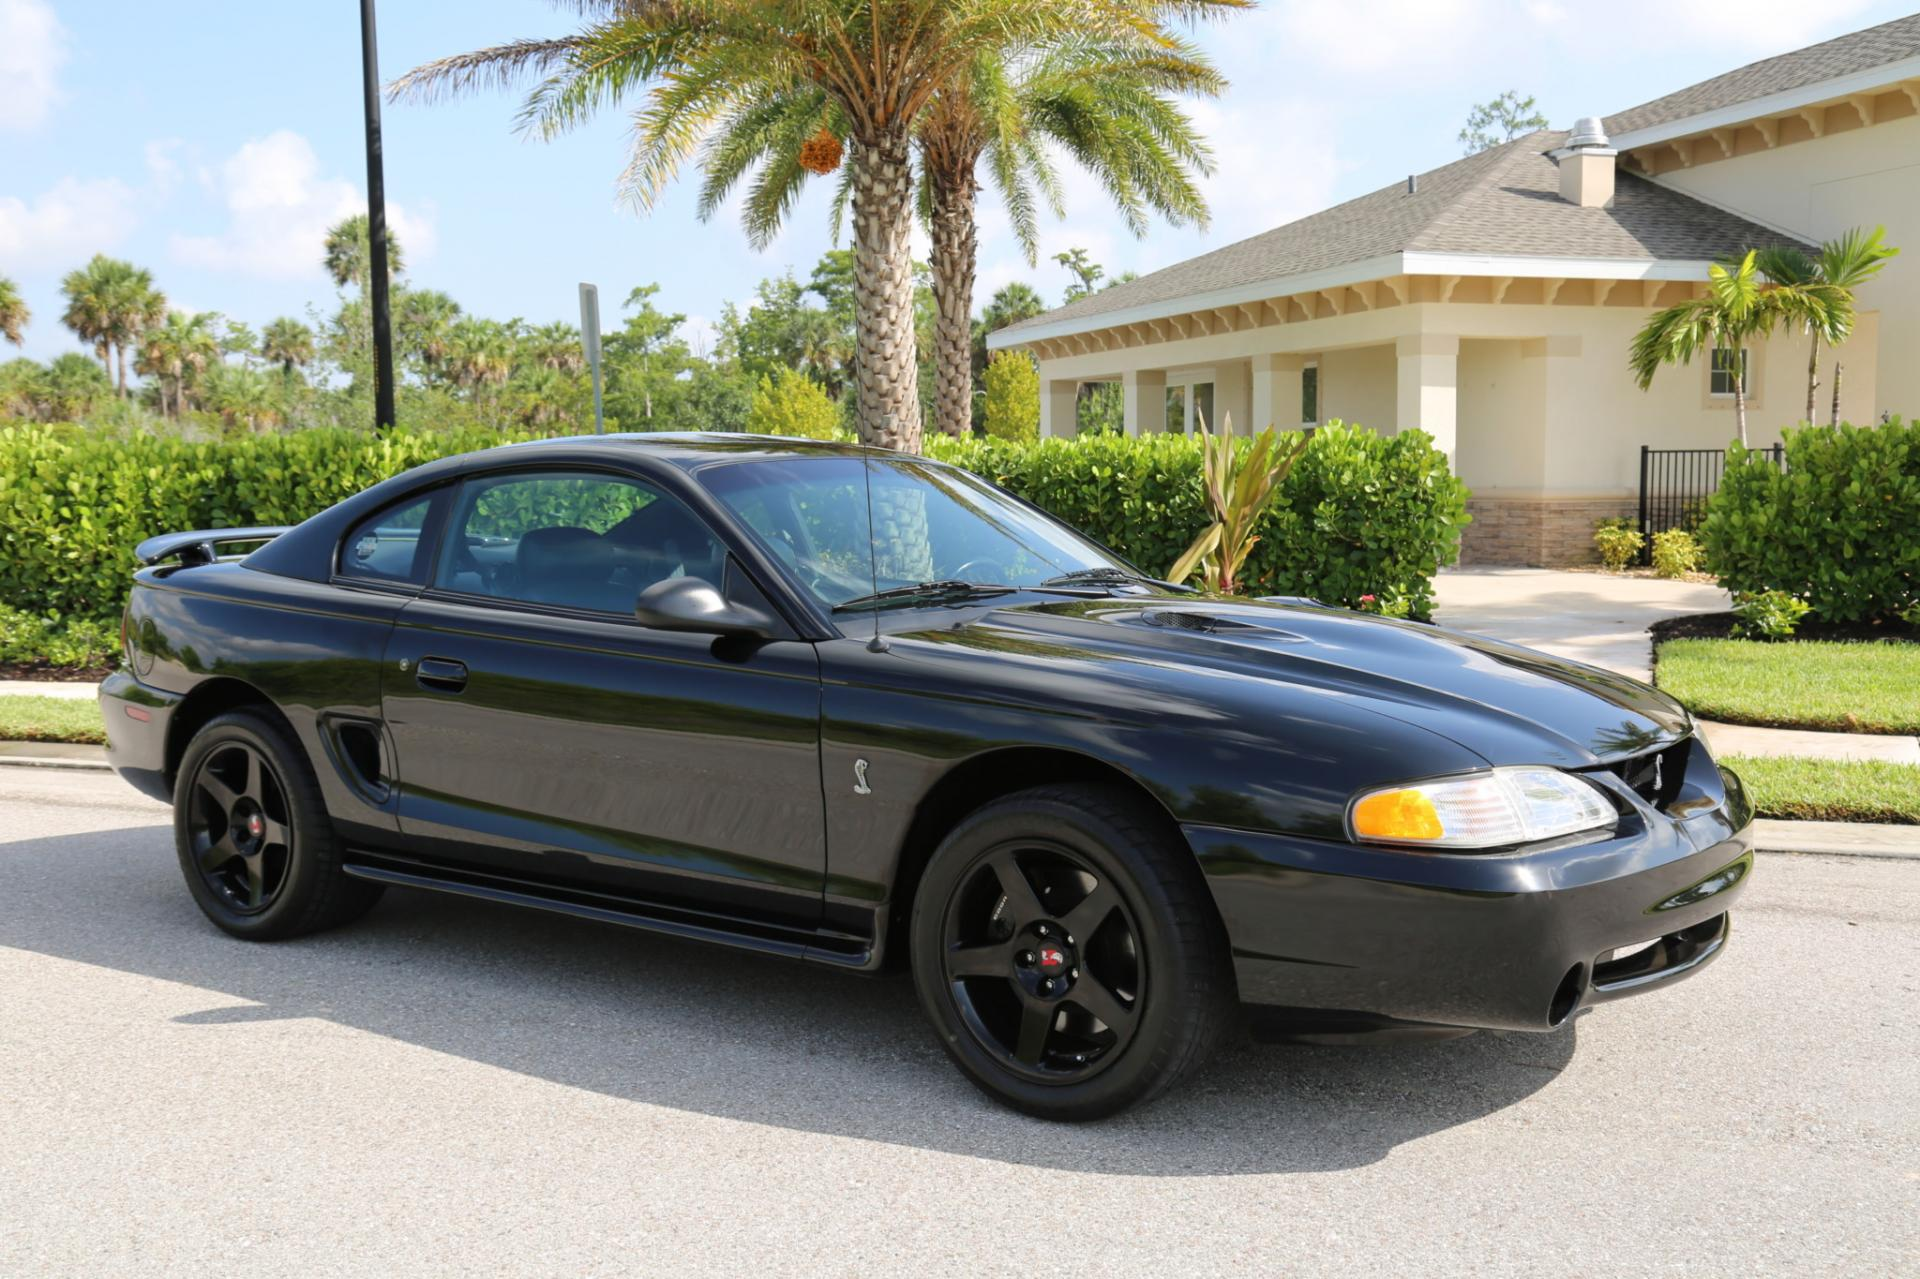 Used 1996 Mustang  Cobra SVT for sale $24,000 at Muscle Cars for Sale Inc. in Fort Myers FL 33912 7